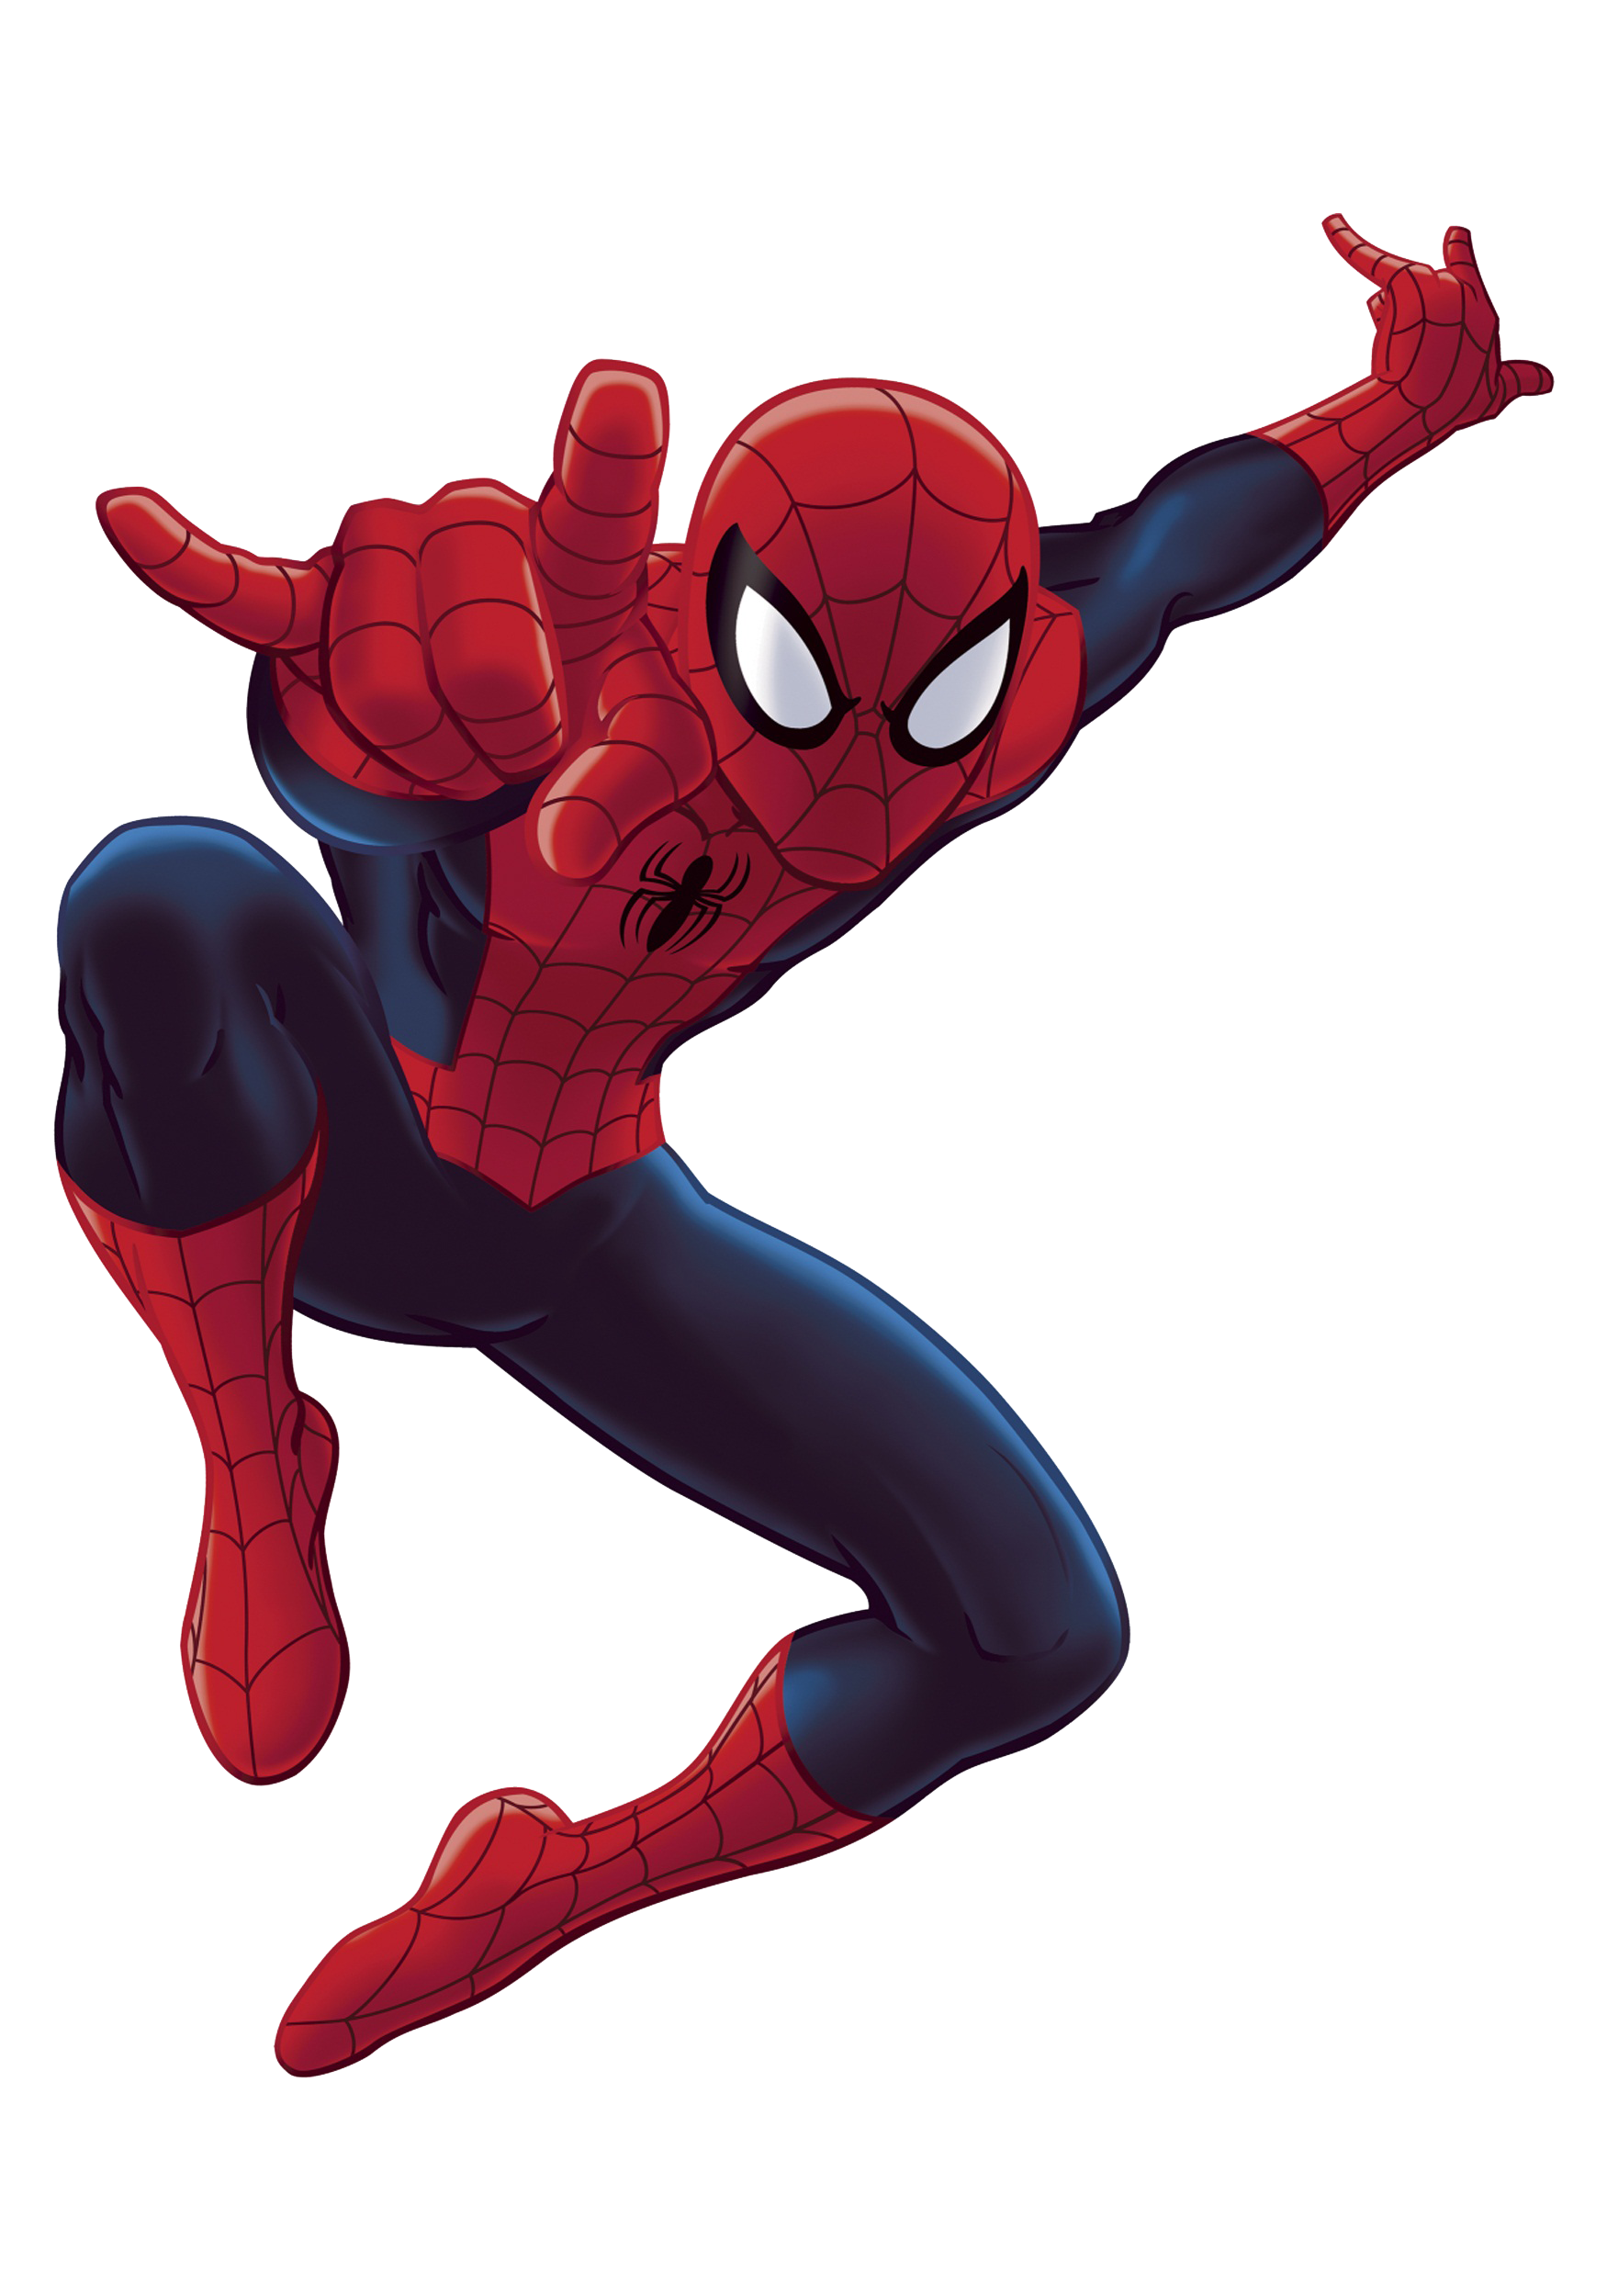 1750x2500 Free Spiderman Png Transparent Background